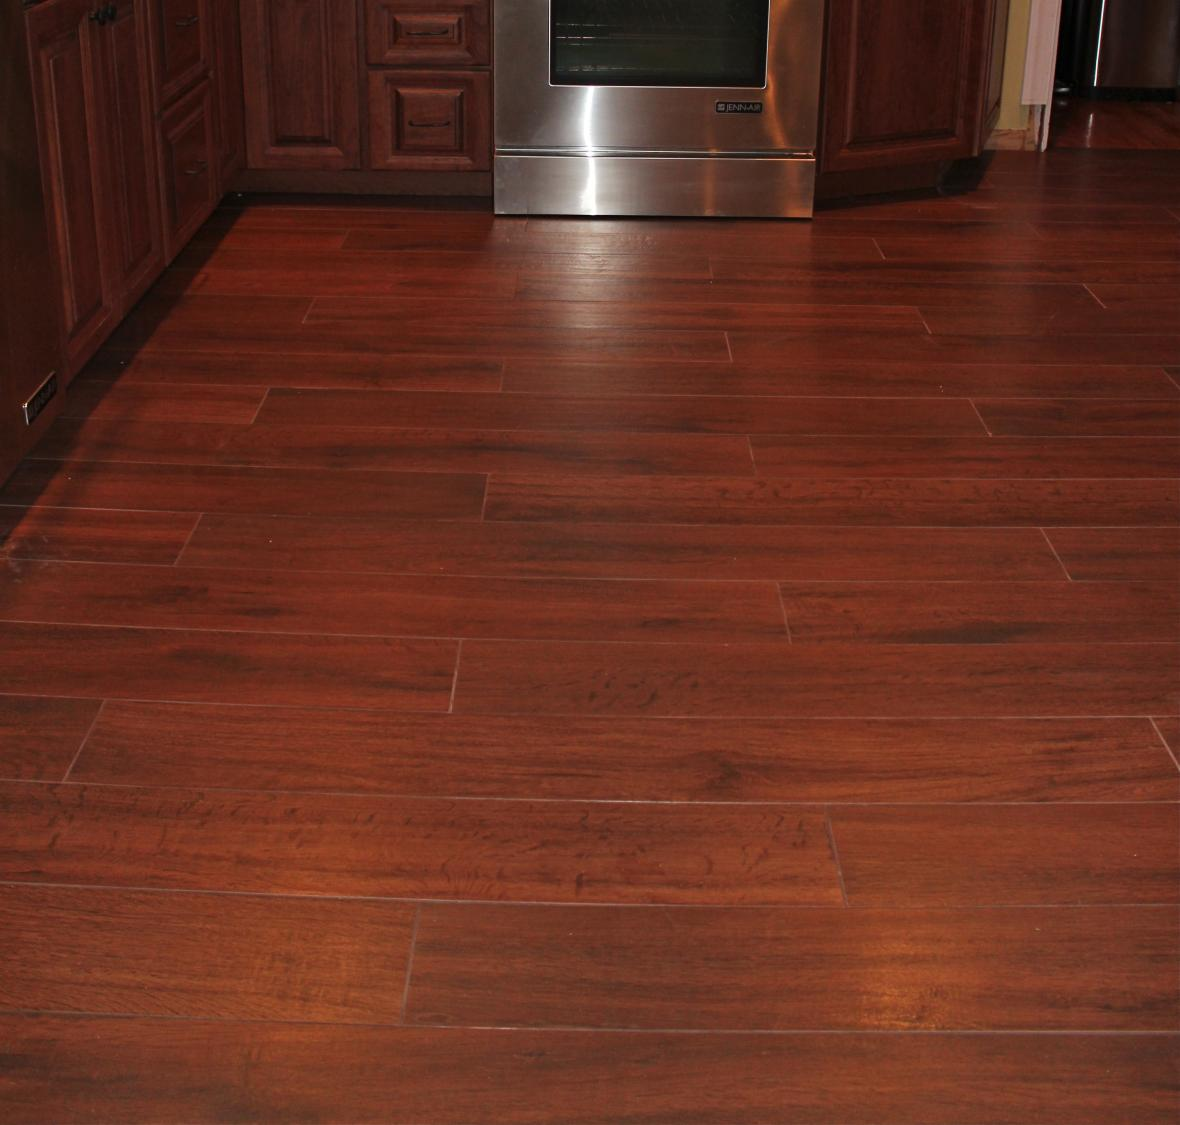 Pictures of tile floors porcelain wood plank tile floor new jersey custom tile dailygadgetfo Choice Image